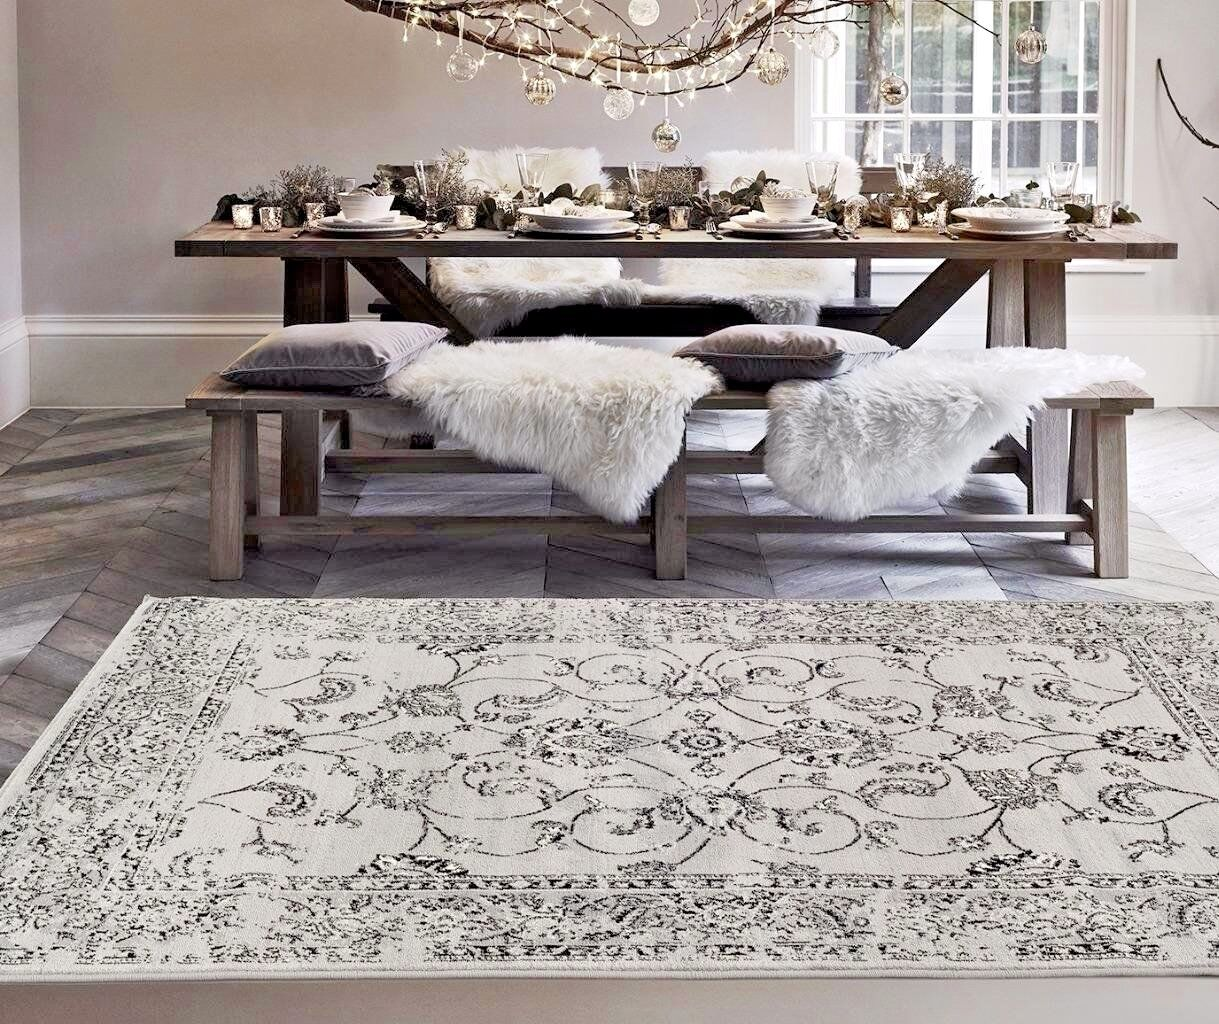 Rugs Area Carpet Large 8x10 Rug Oriental Persian Gray Floor